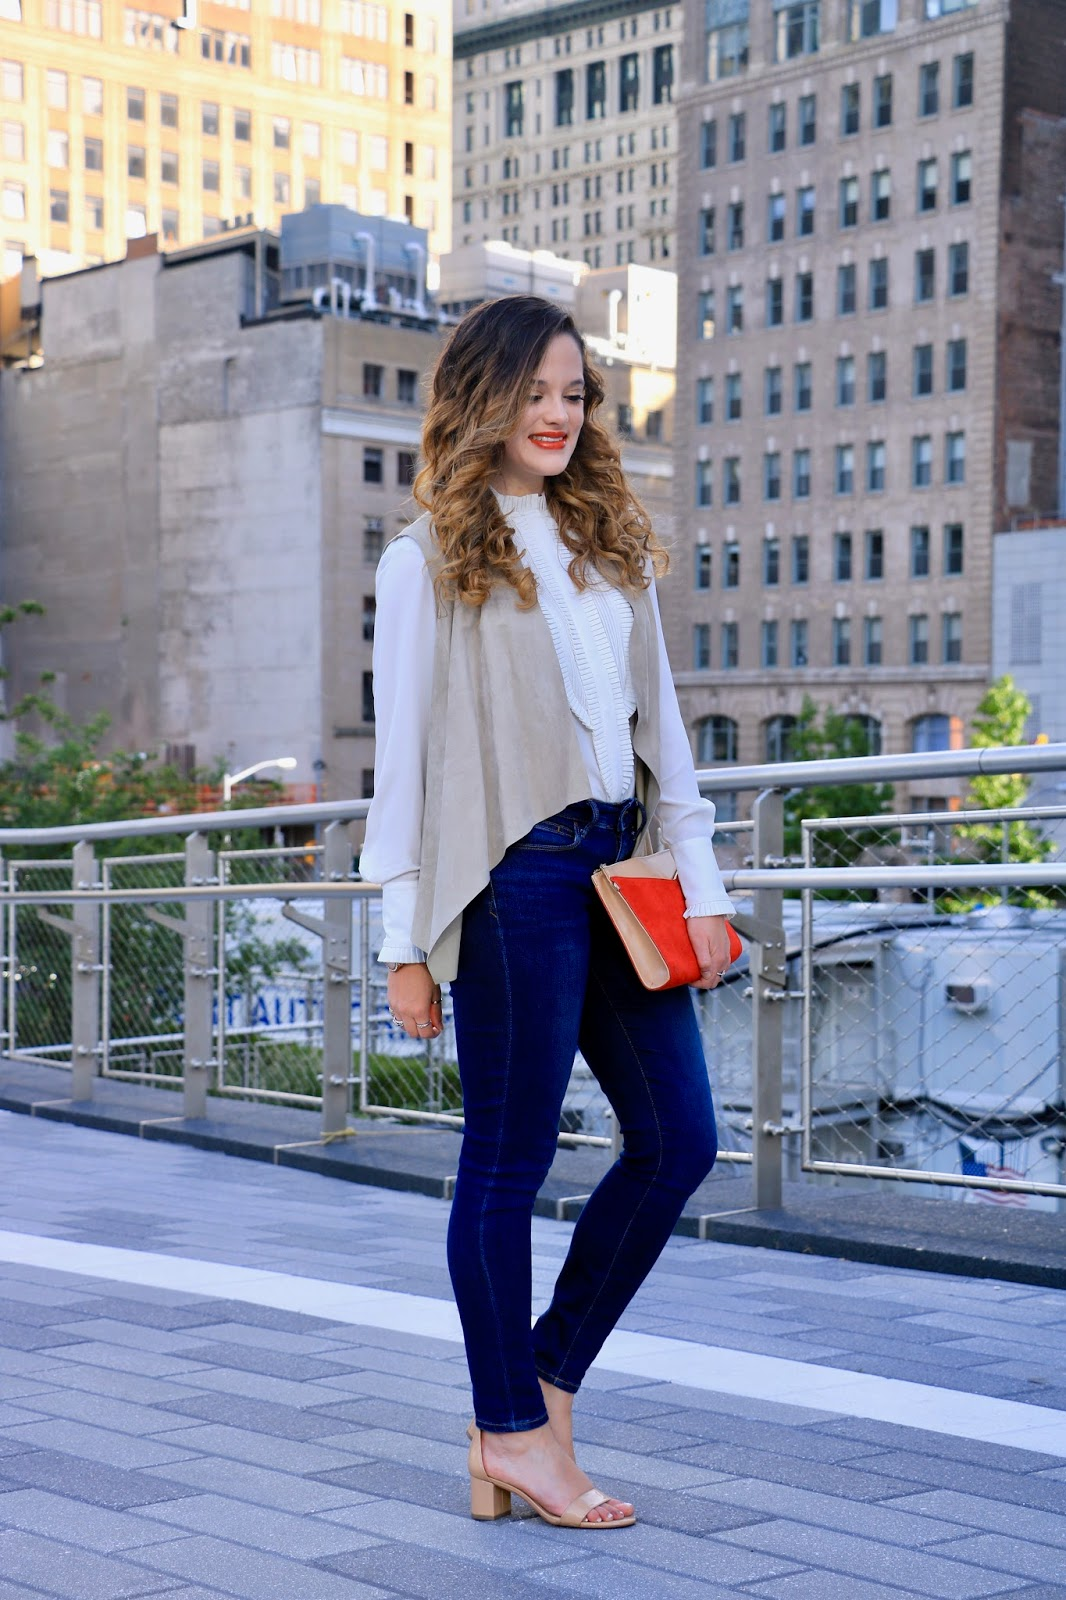 Nyc fashion blogger Kathleen Harper in fall fashion